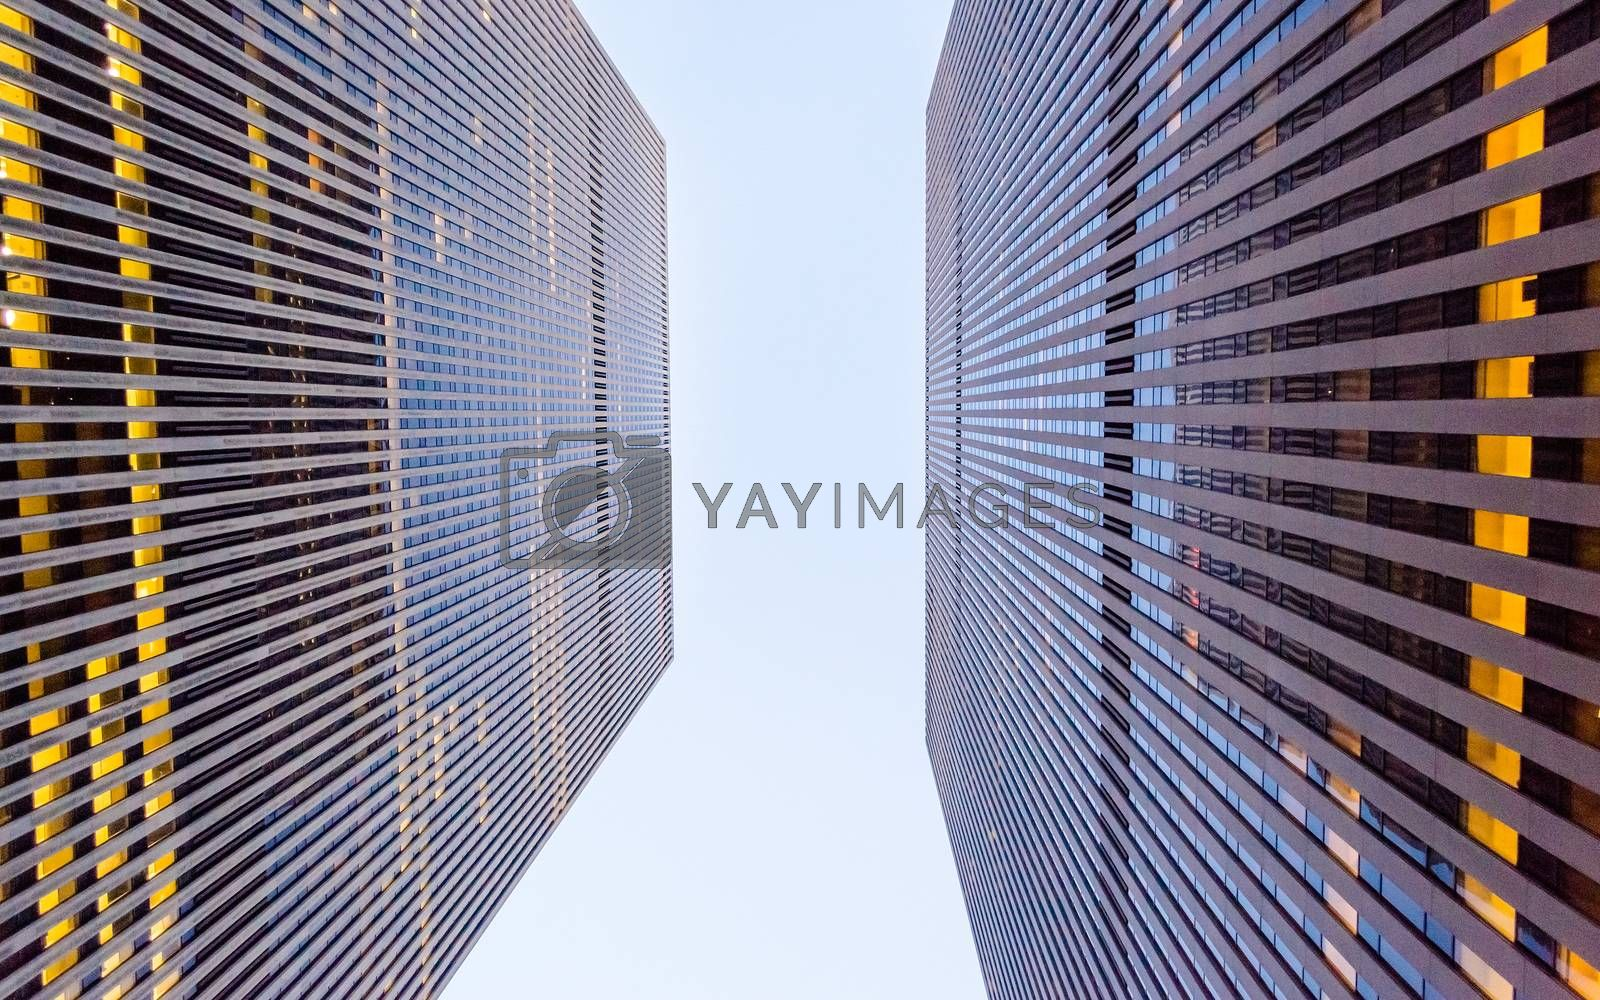 Bottom view of modern skyscrapers in business district of Manhattan, New York, USA. Concept for business, finance, real estate